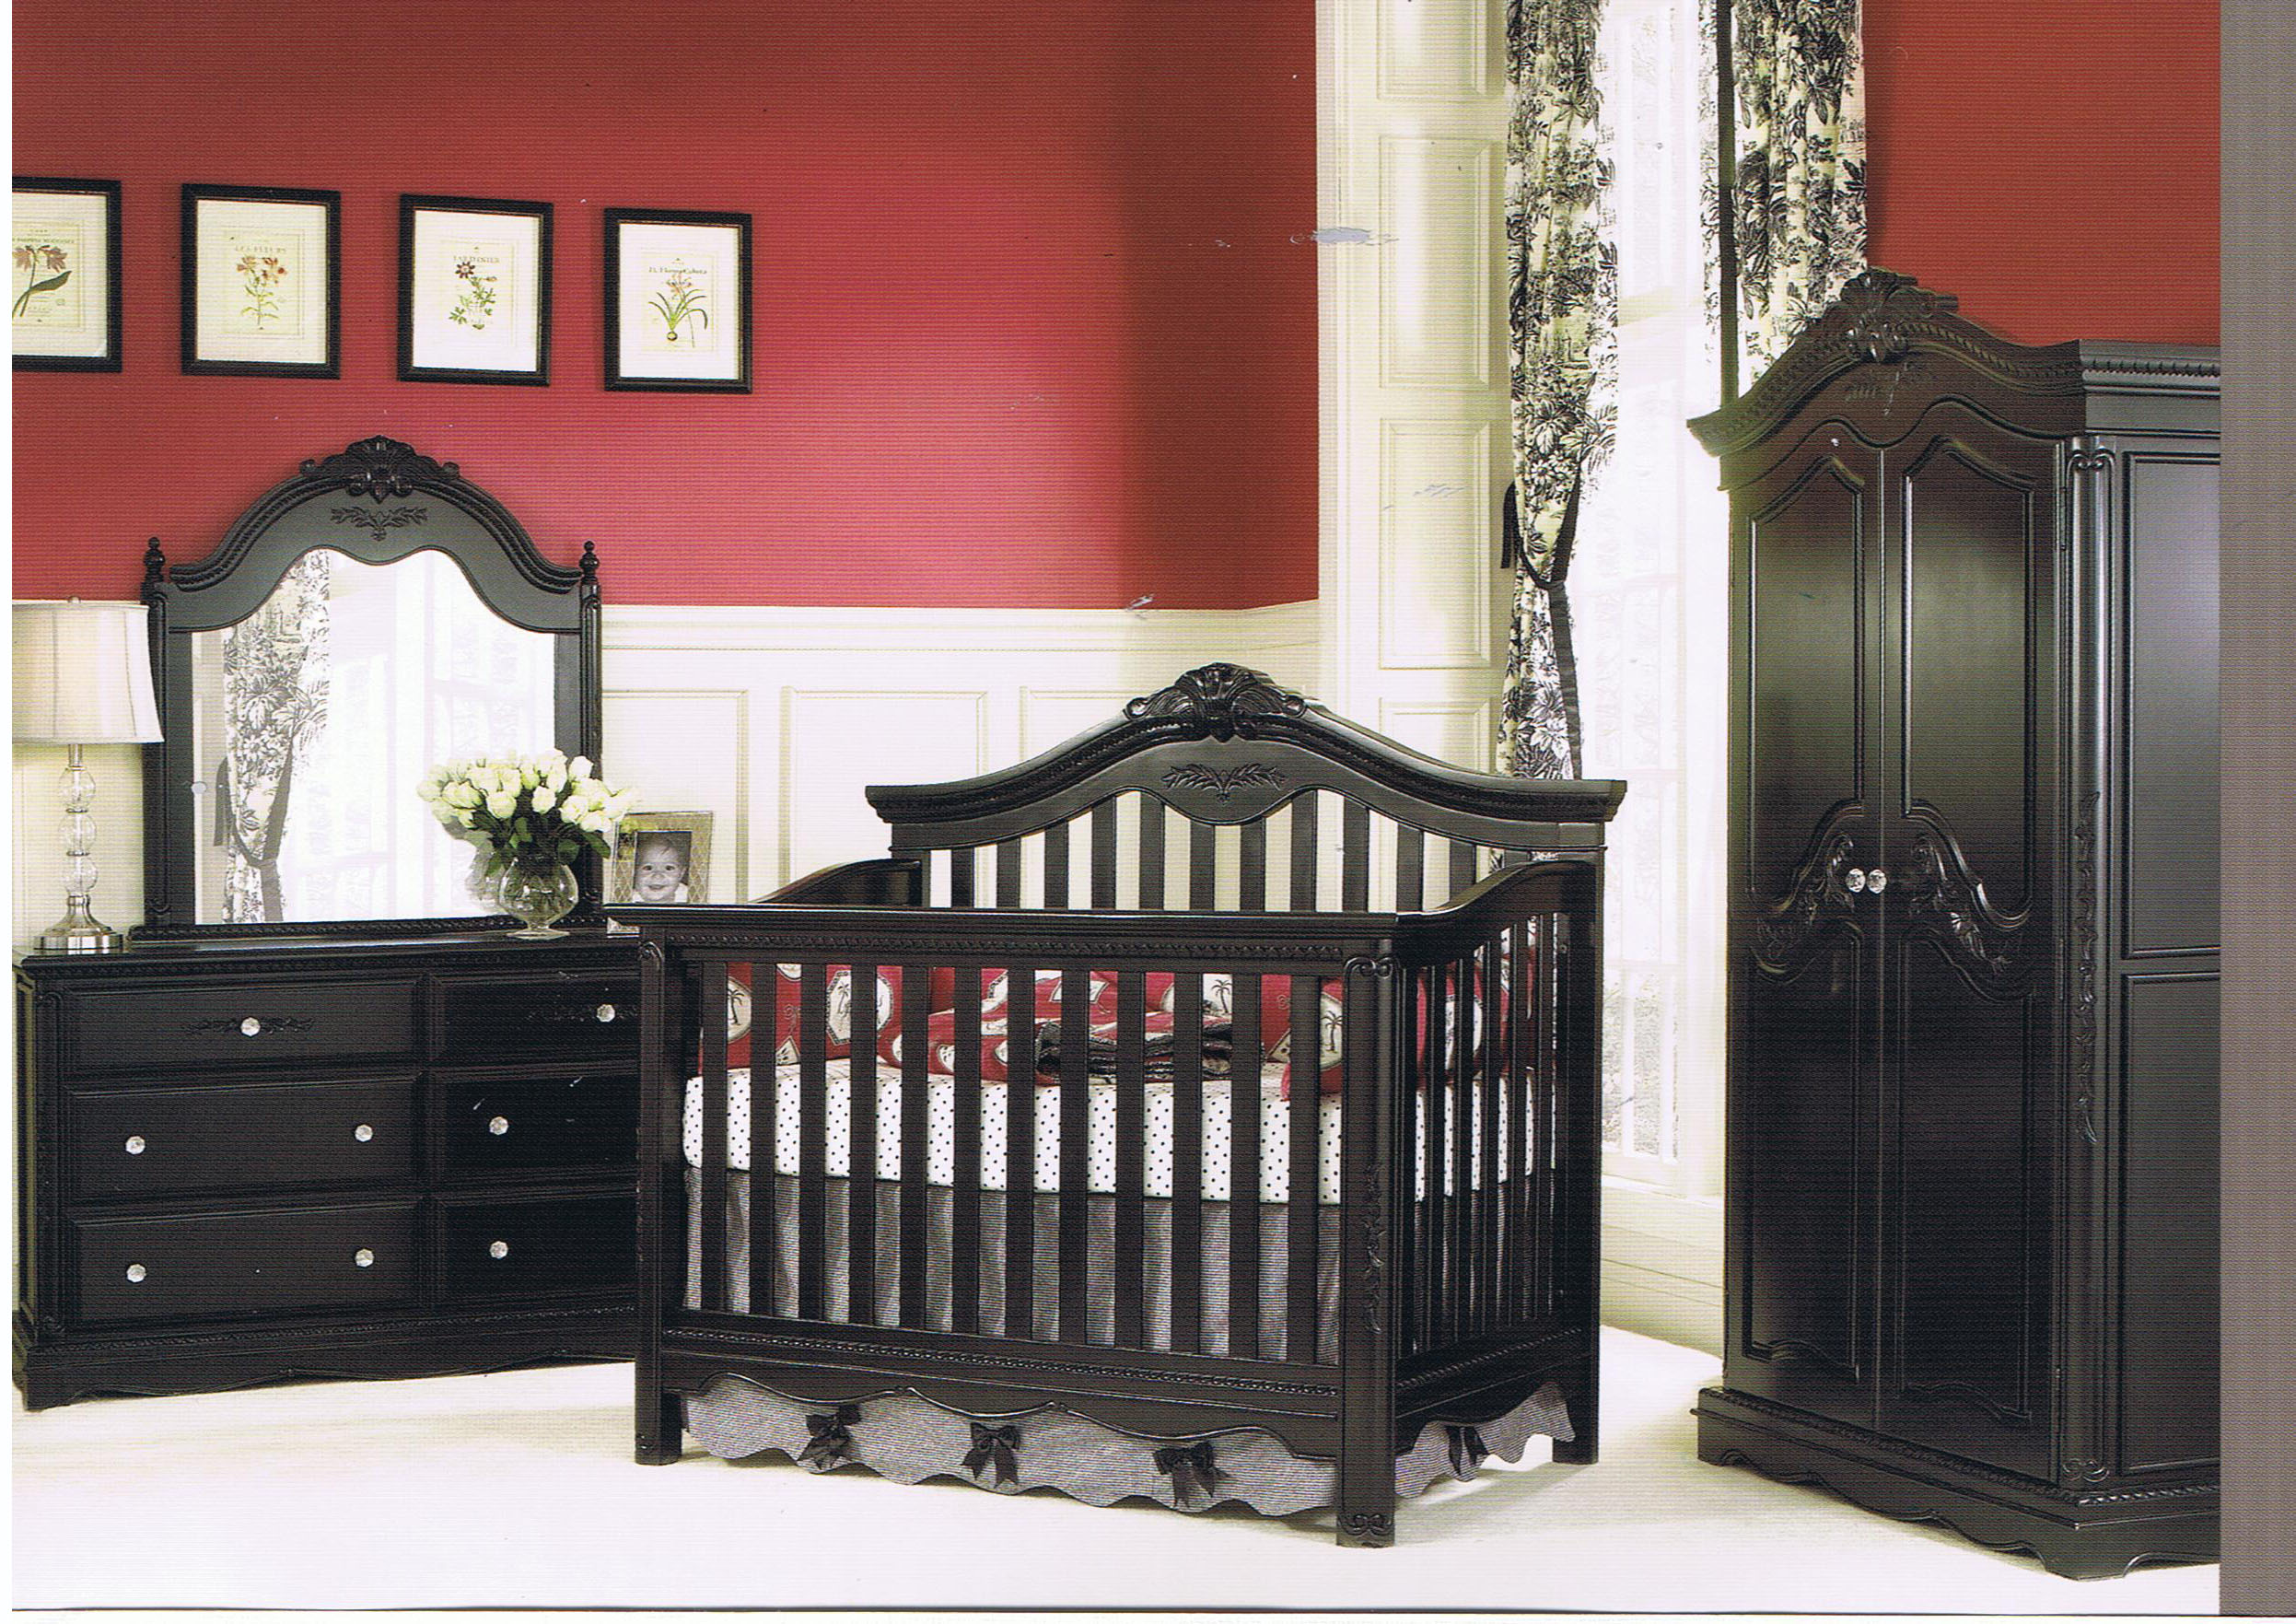 Crib Spindle Covers | Restoration Hardware Cribs | Baby Crib Carousel